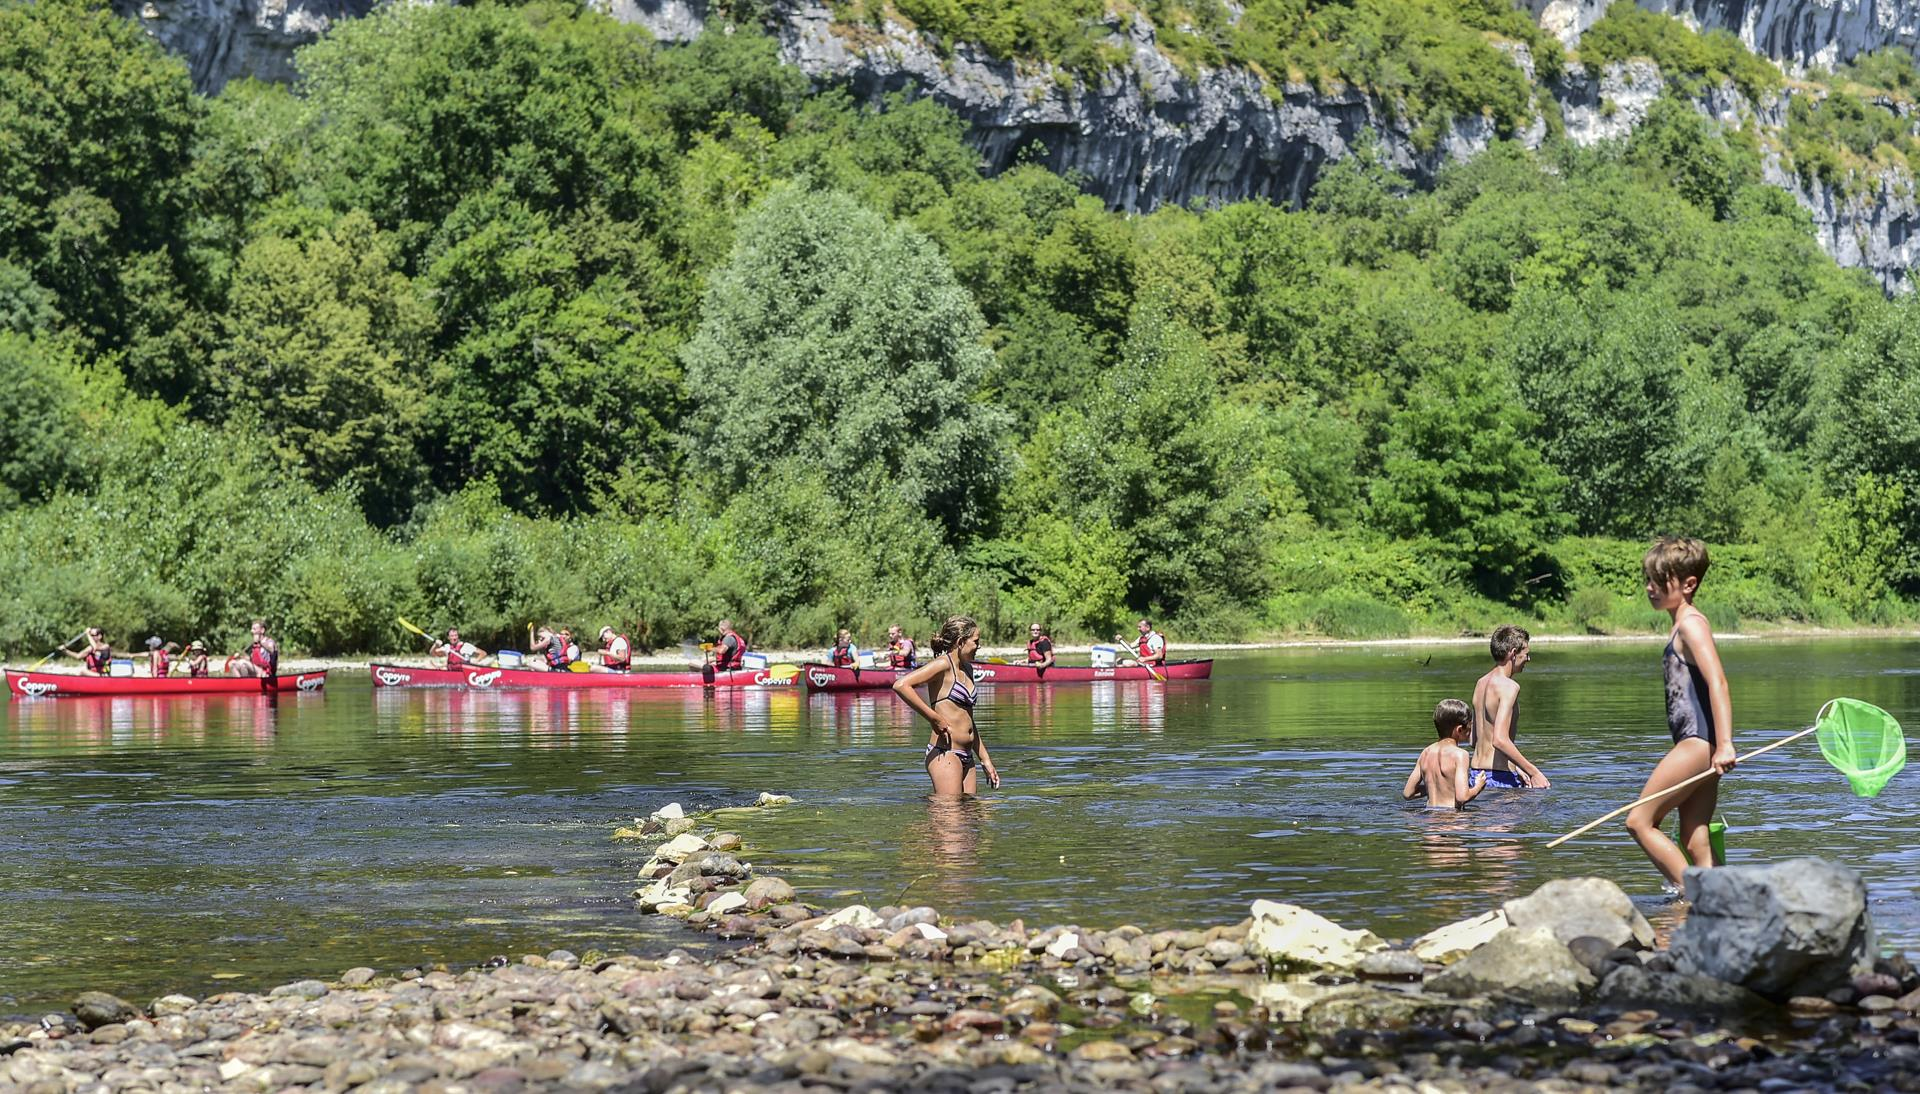 Bathing Camping LA RIVIERE - LACAVE